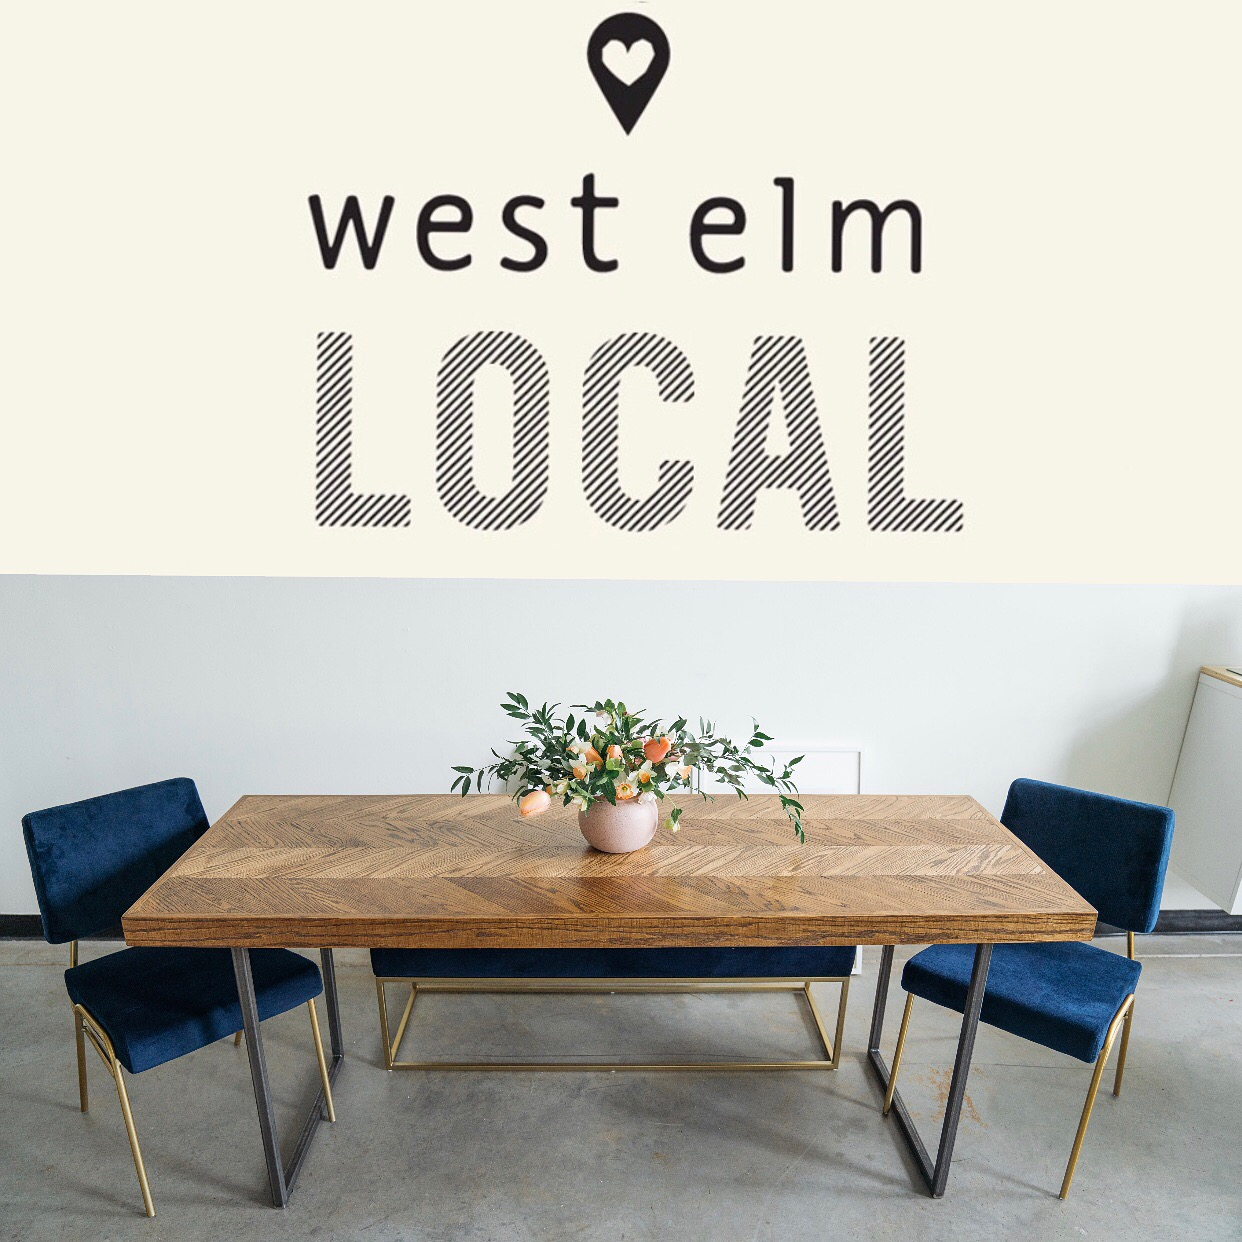 Local Maker for West Elm - Rosewood co tables are now available in West Elms all across the state of North Carolina!